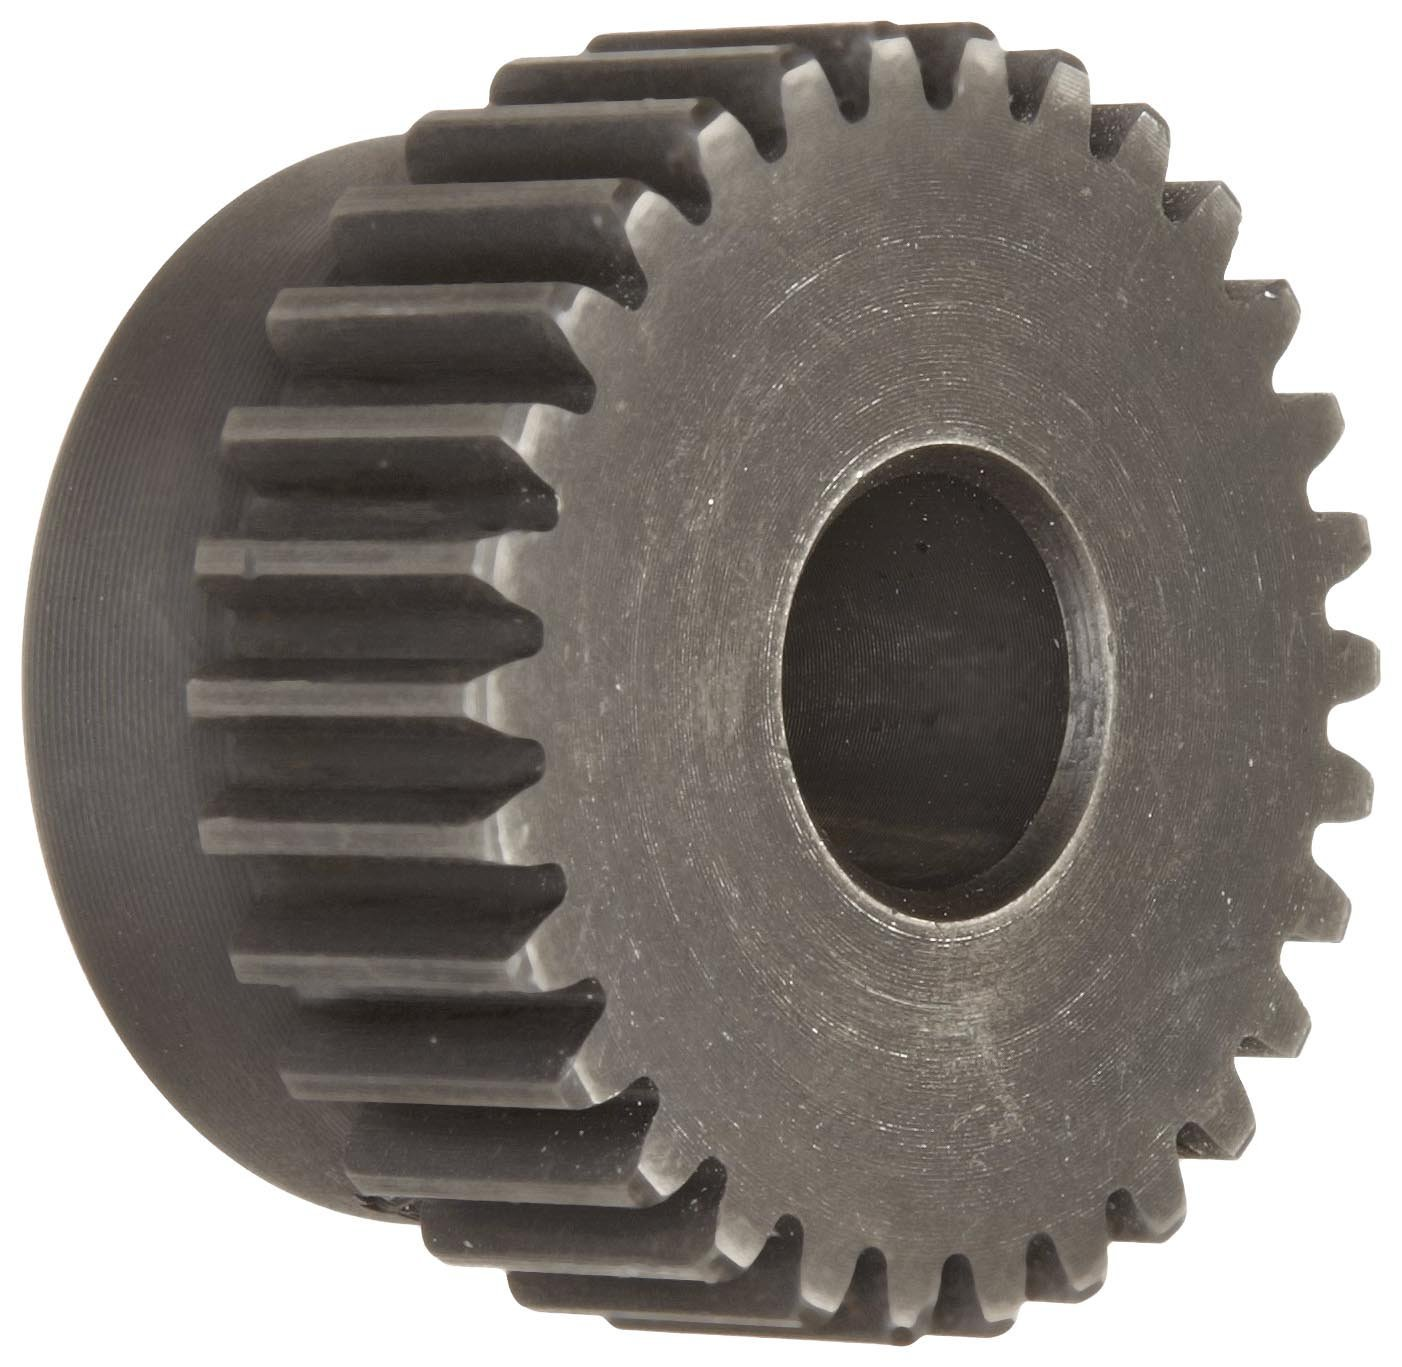 M1B51 Ametric Metric Minimum Plain Bore Steel Spur Gear with Hub, 1 Metric Module Tooth Profile, 51 Teeth, 20 Degree Pressure Angle, 53 mm Outside Diameter, 40 mm Hub Diameter, 12 +/-1mm Pilot Bore, 15 mm Tooth Face Width, (Mfg Code 1-025)